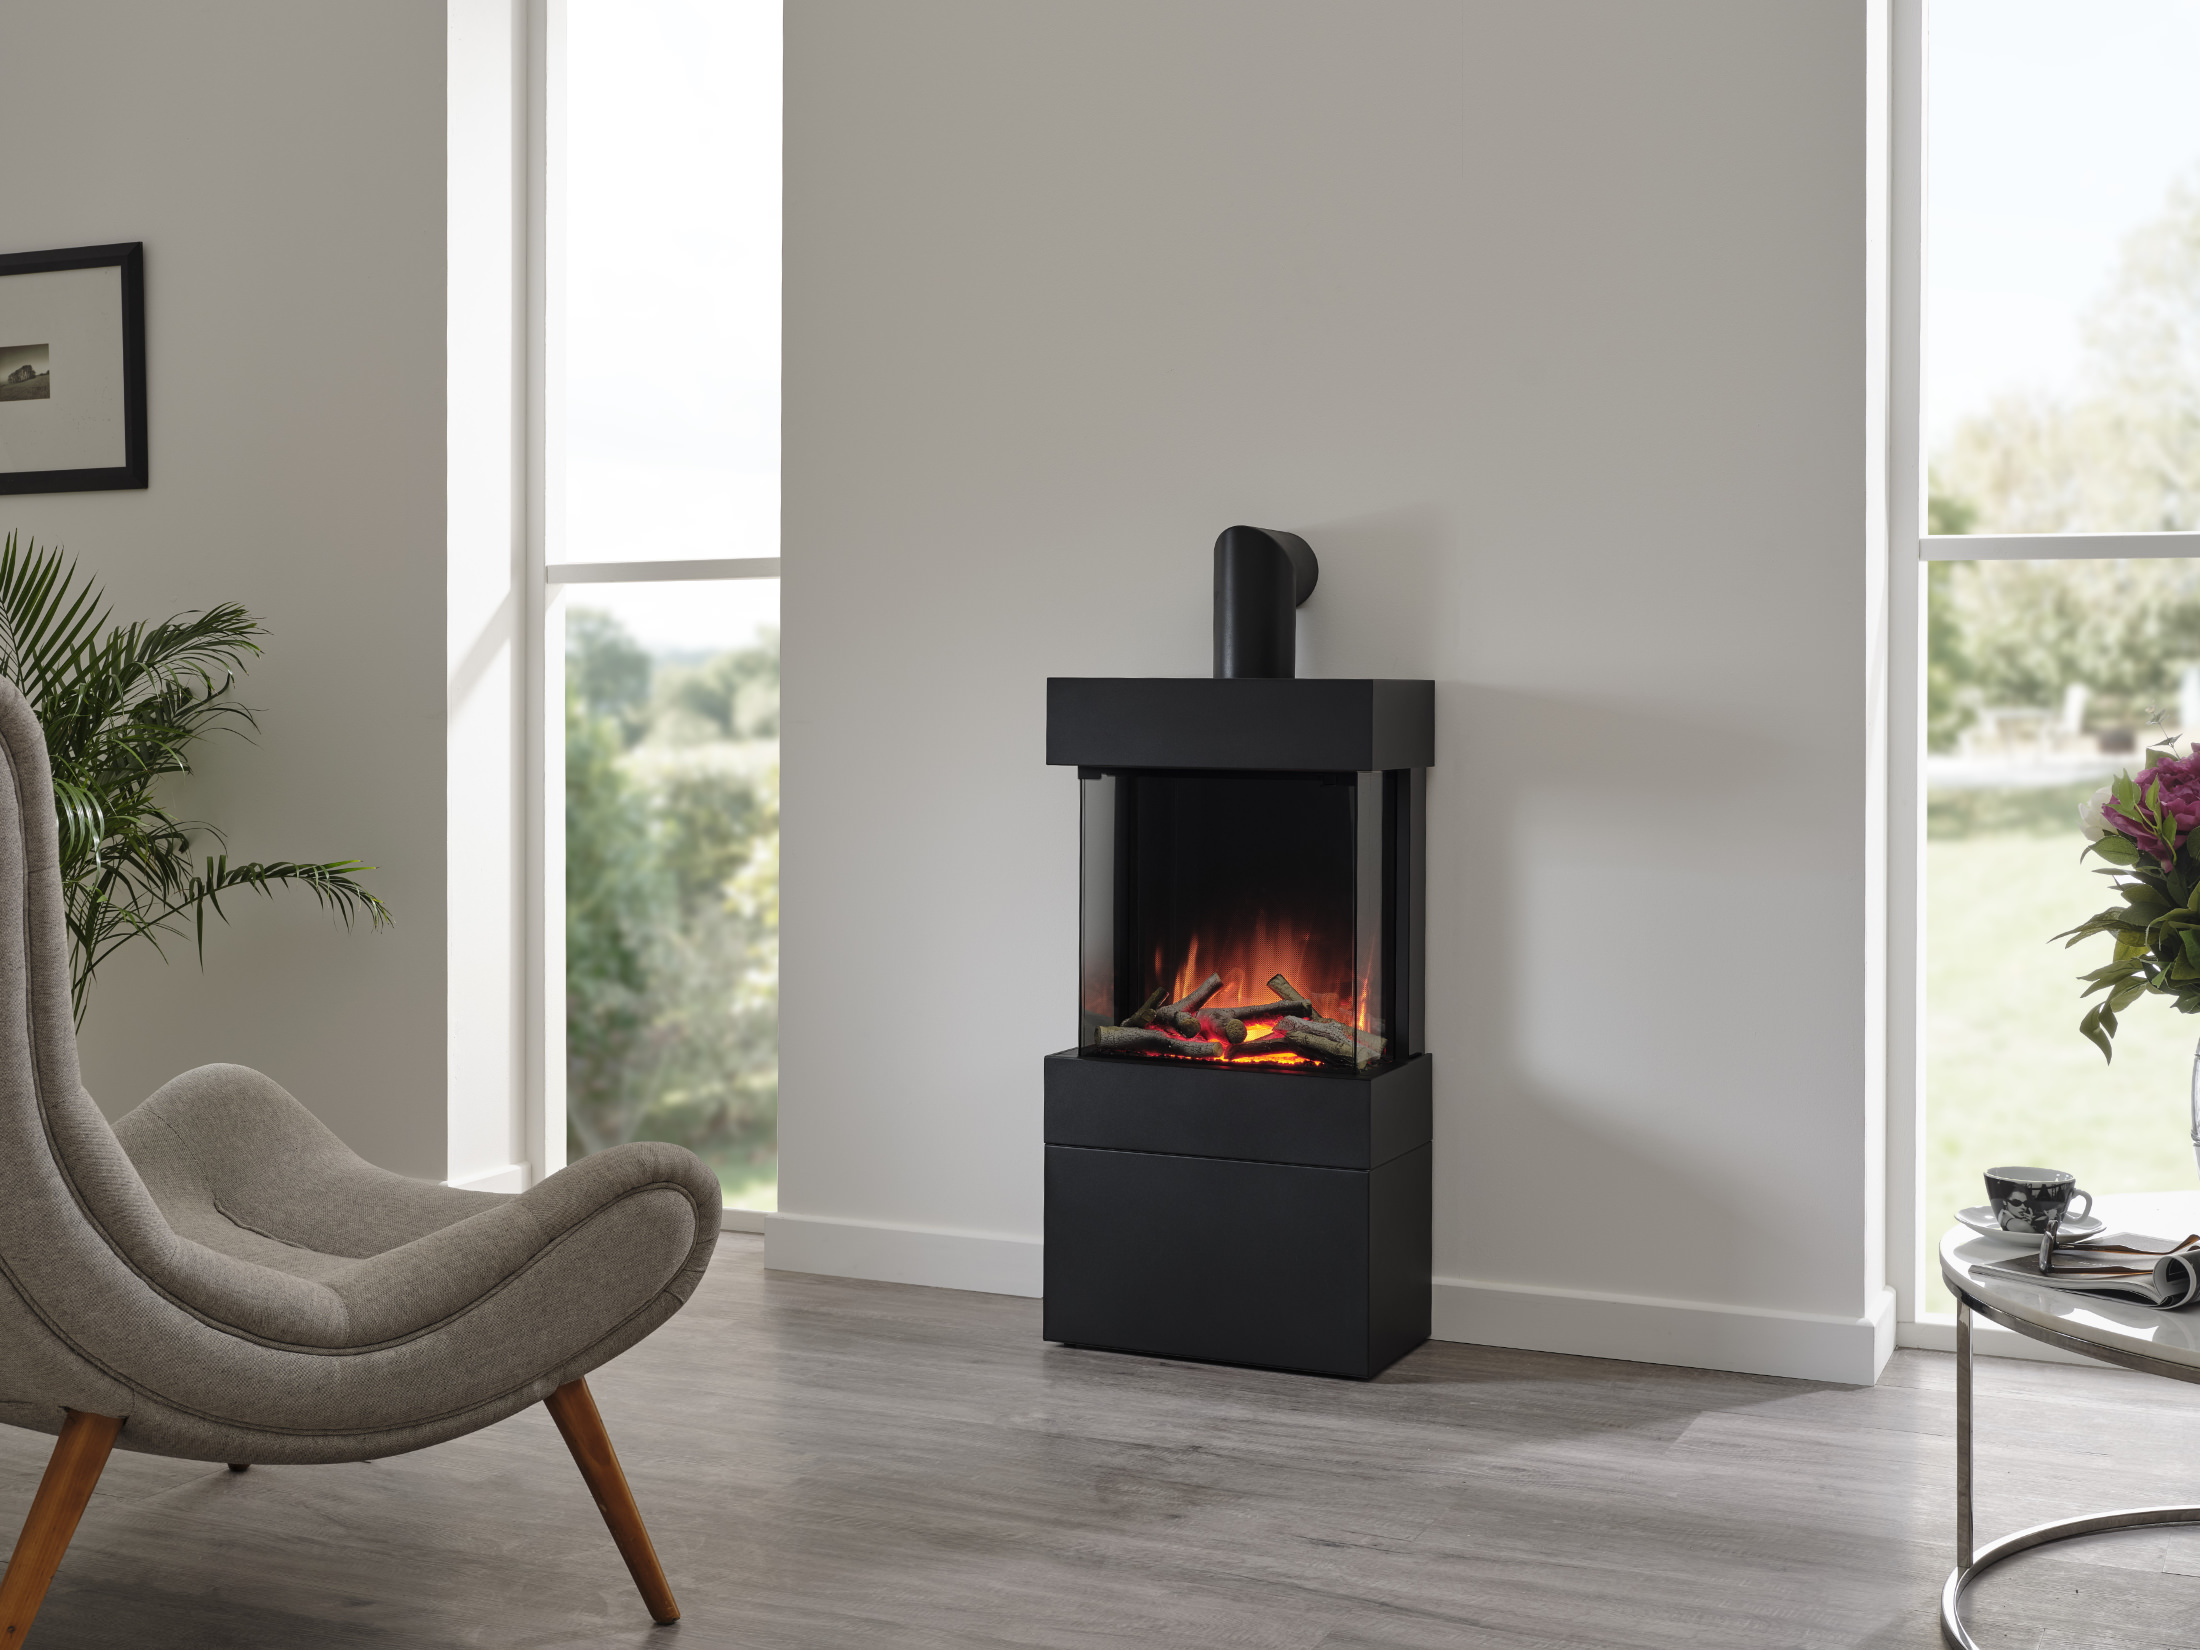 Fires and More - Luca 450 Stove Fire